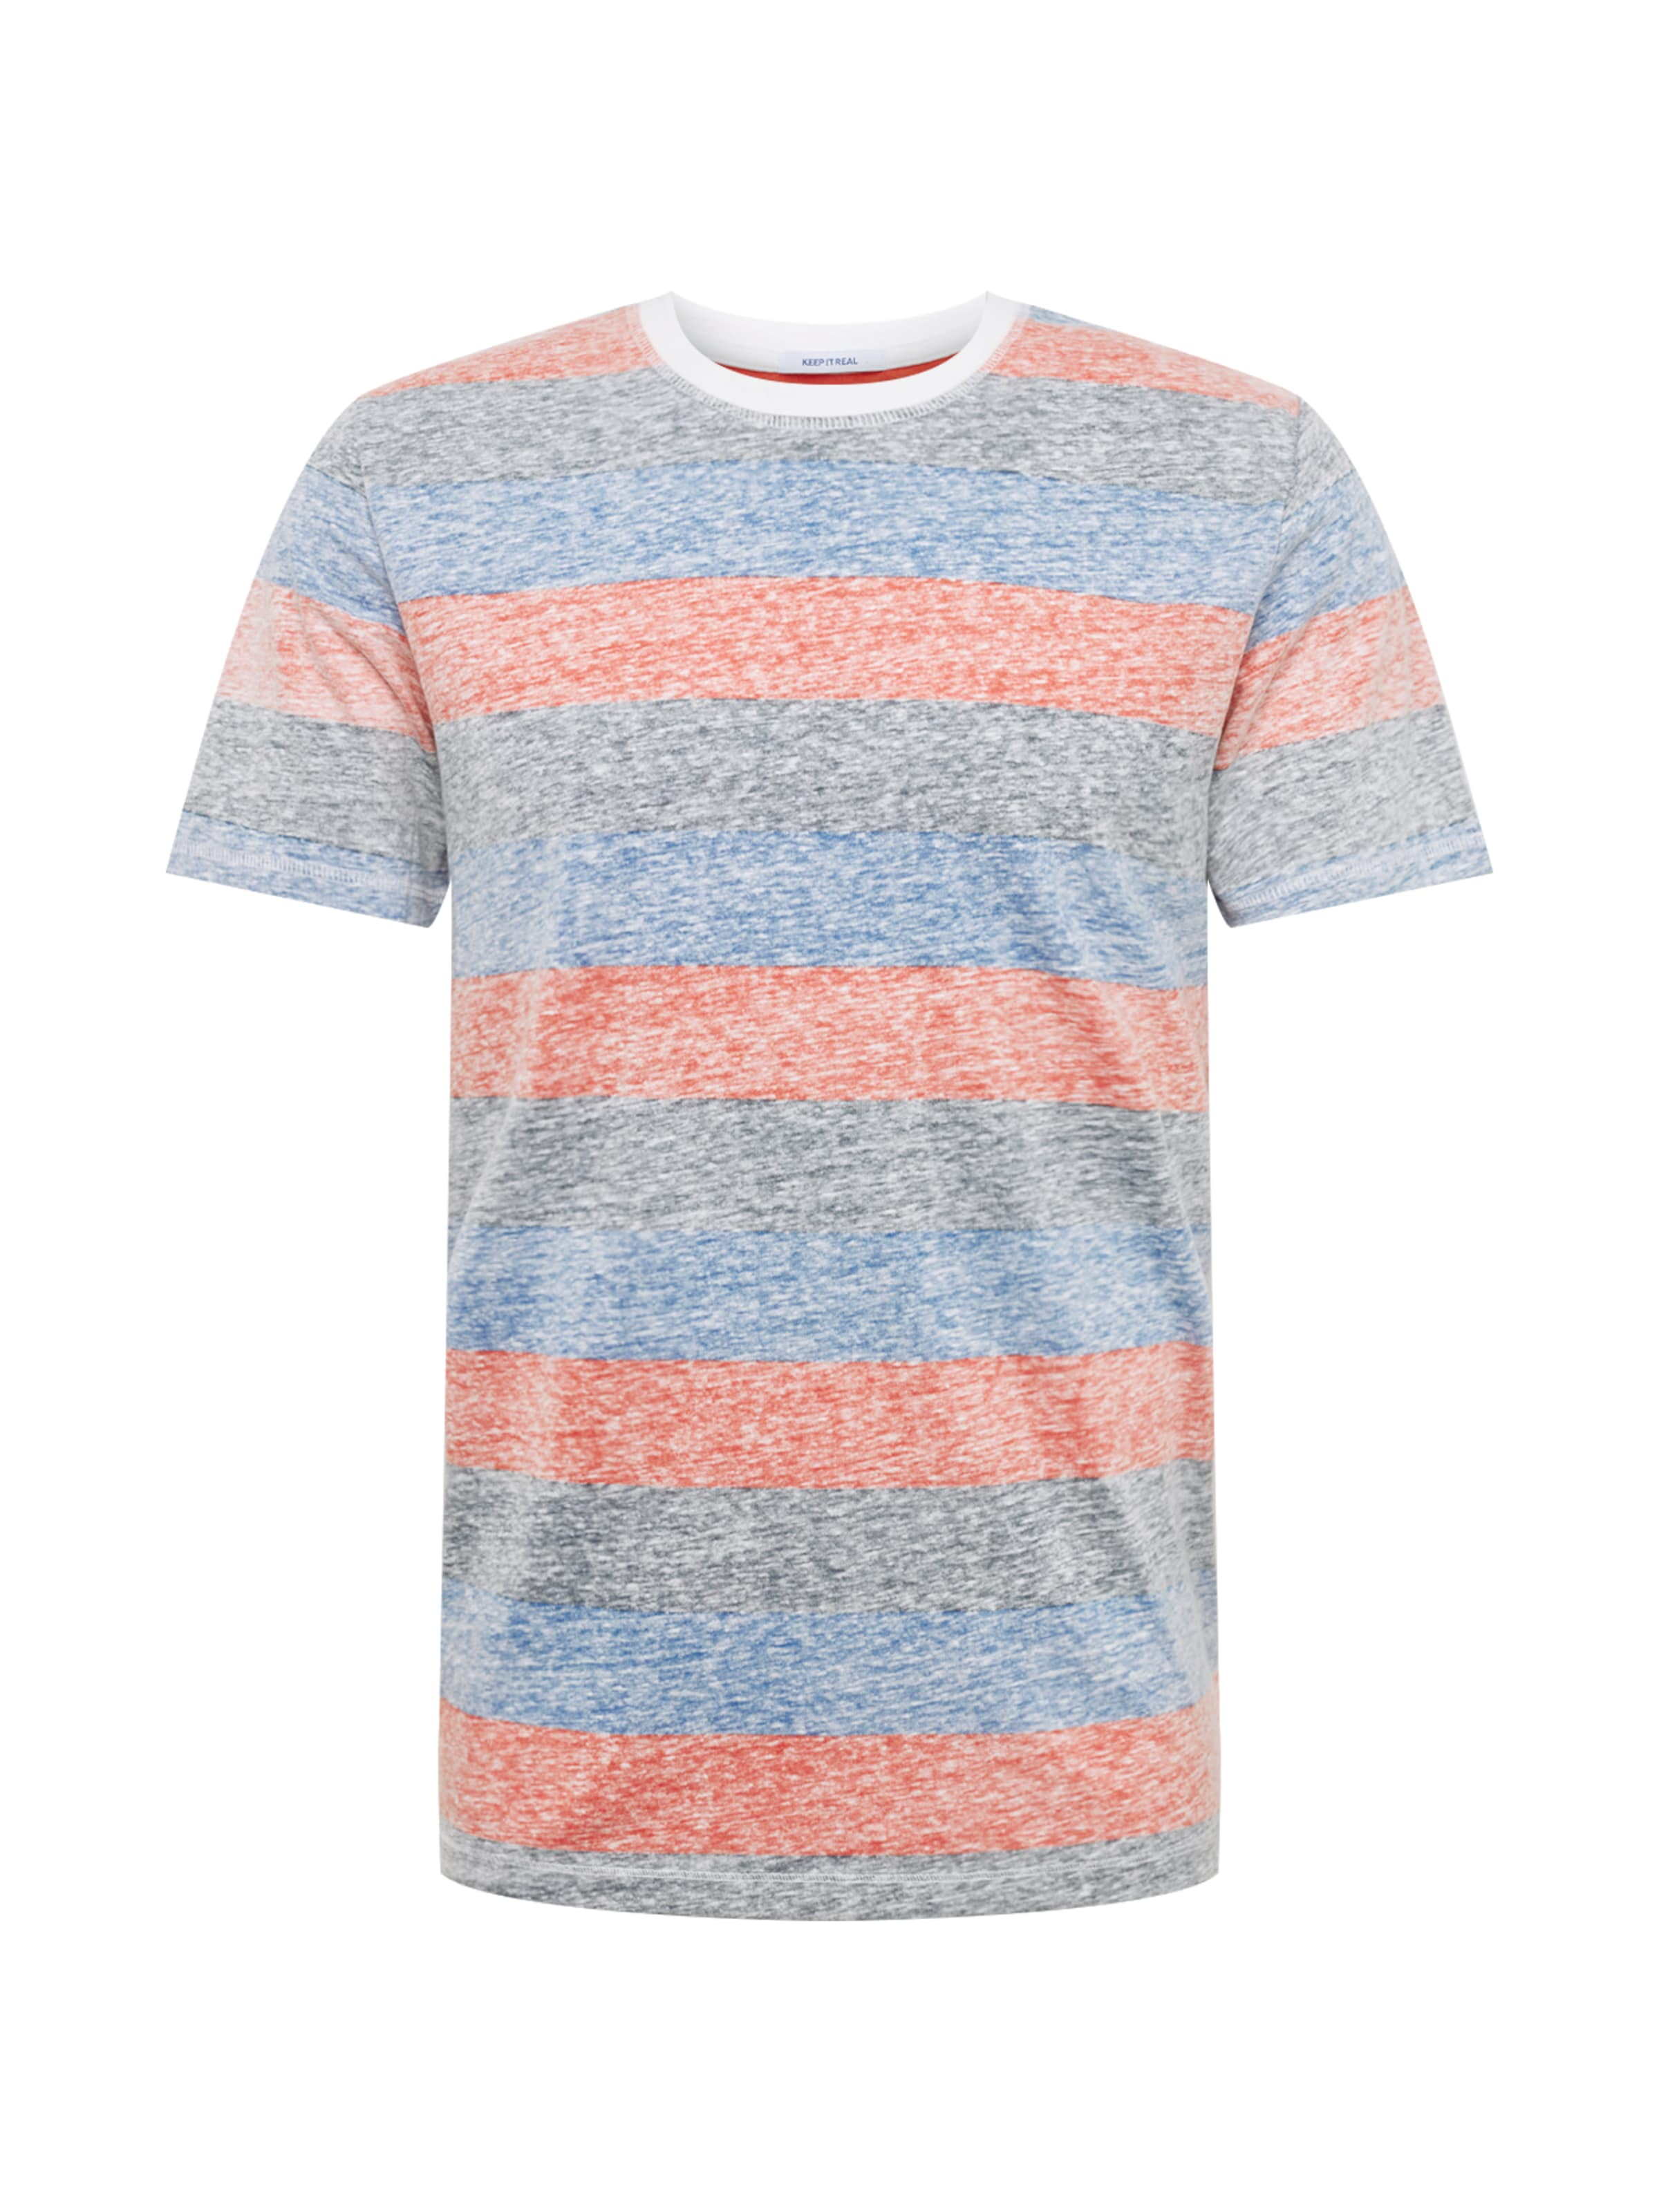 shirt En Jones 'sider' T Chiné Gris Jackamp; BleuClair yb6f7g